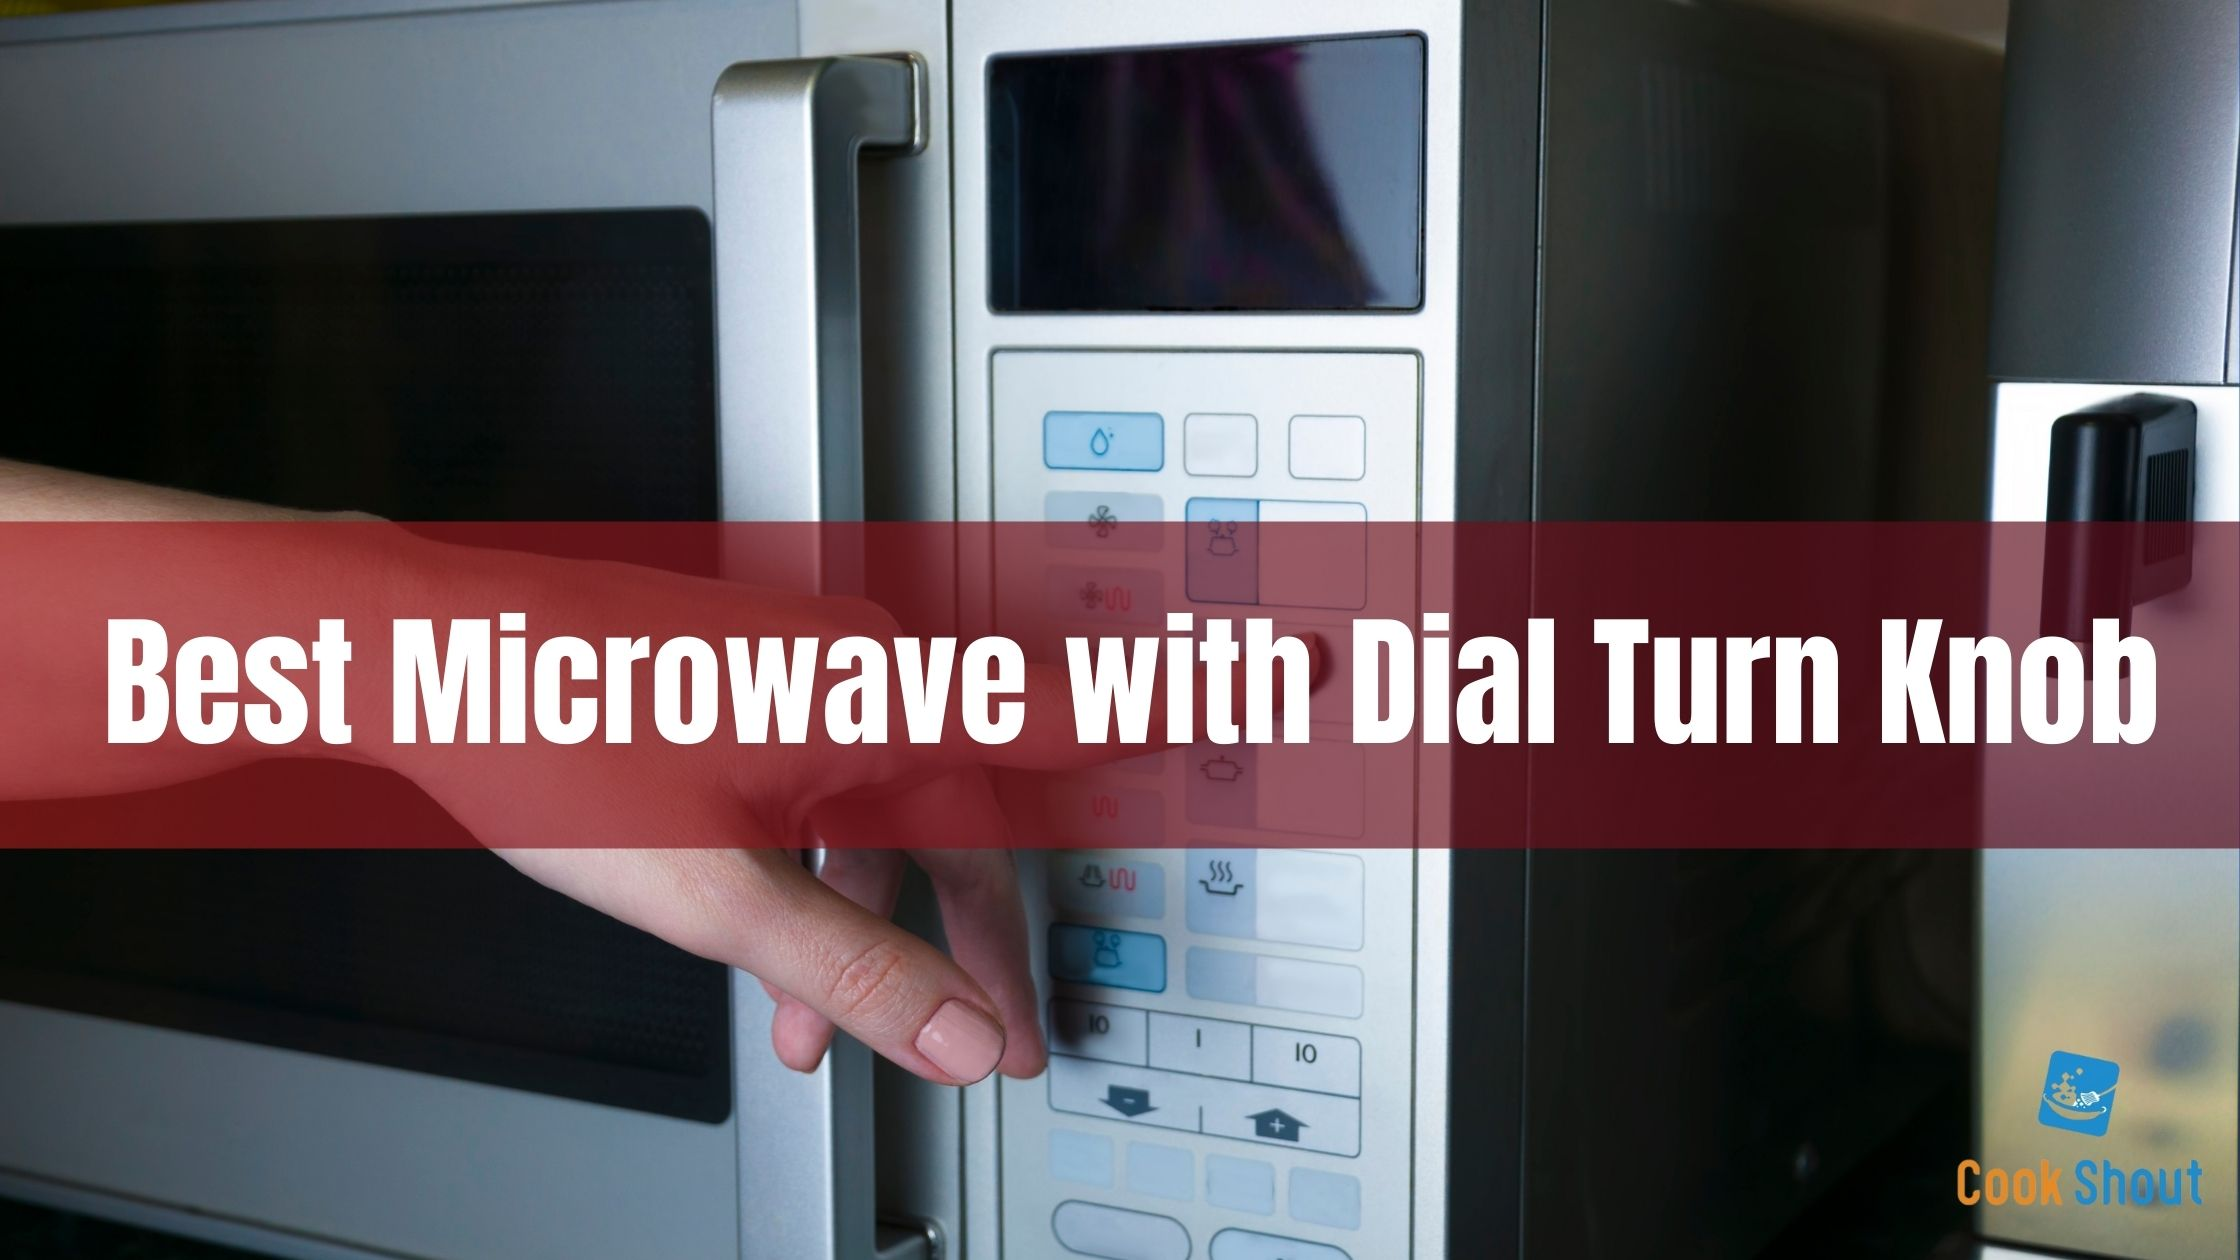 Best Microwave with Dial Turn Knob